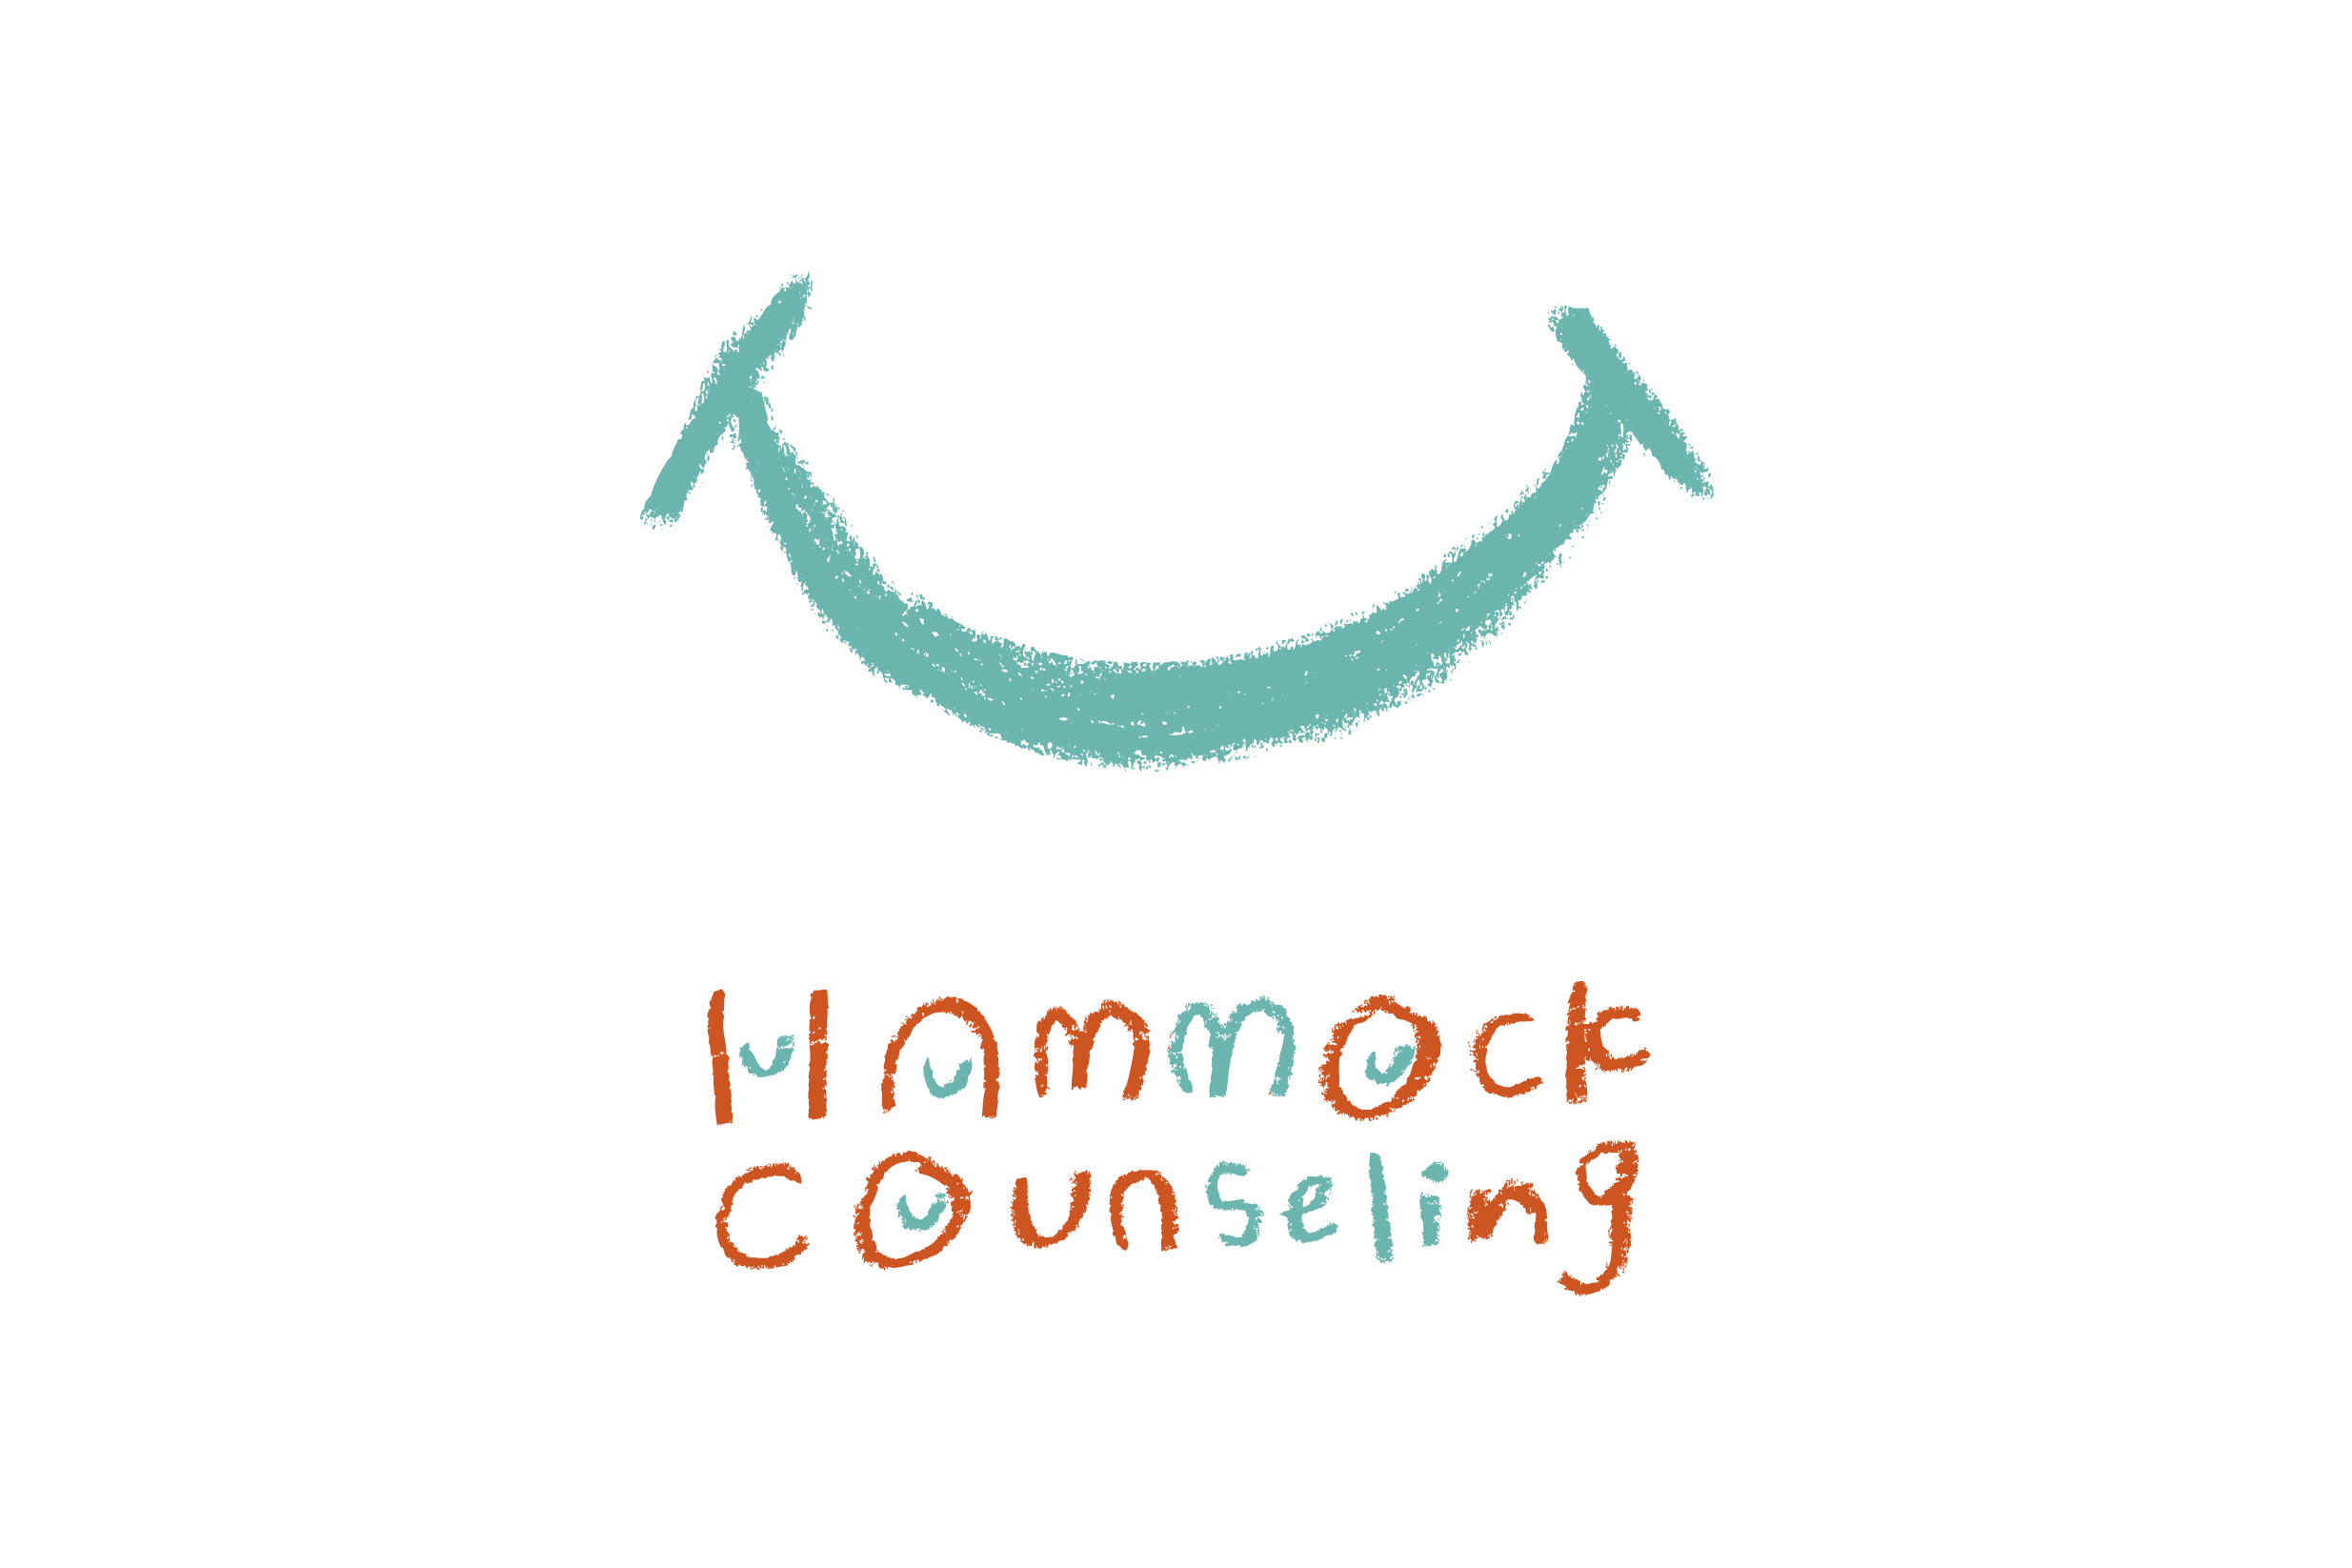 HANMMOCK COUNSELING